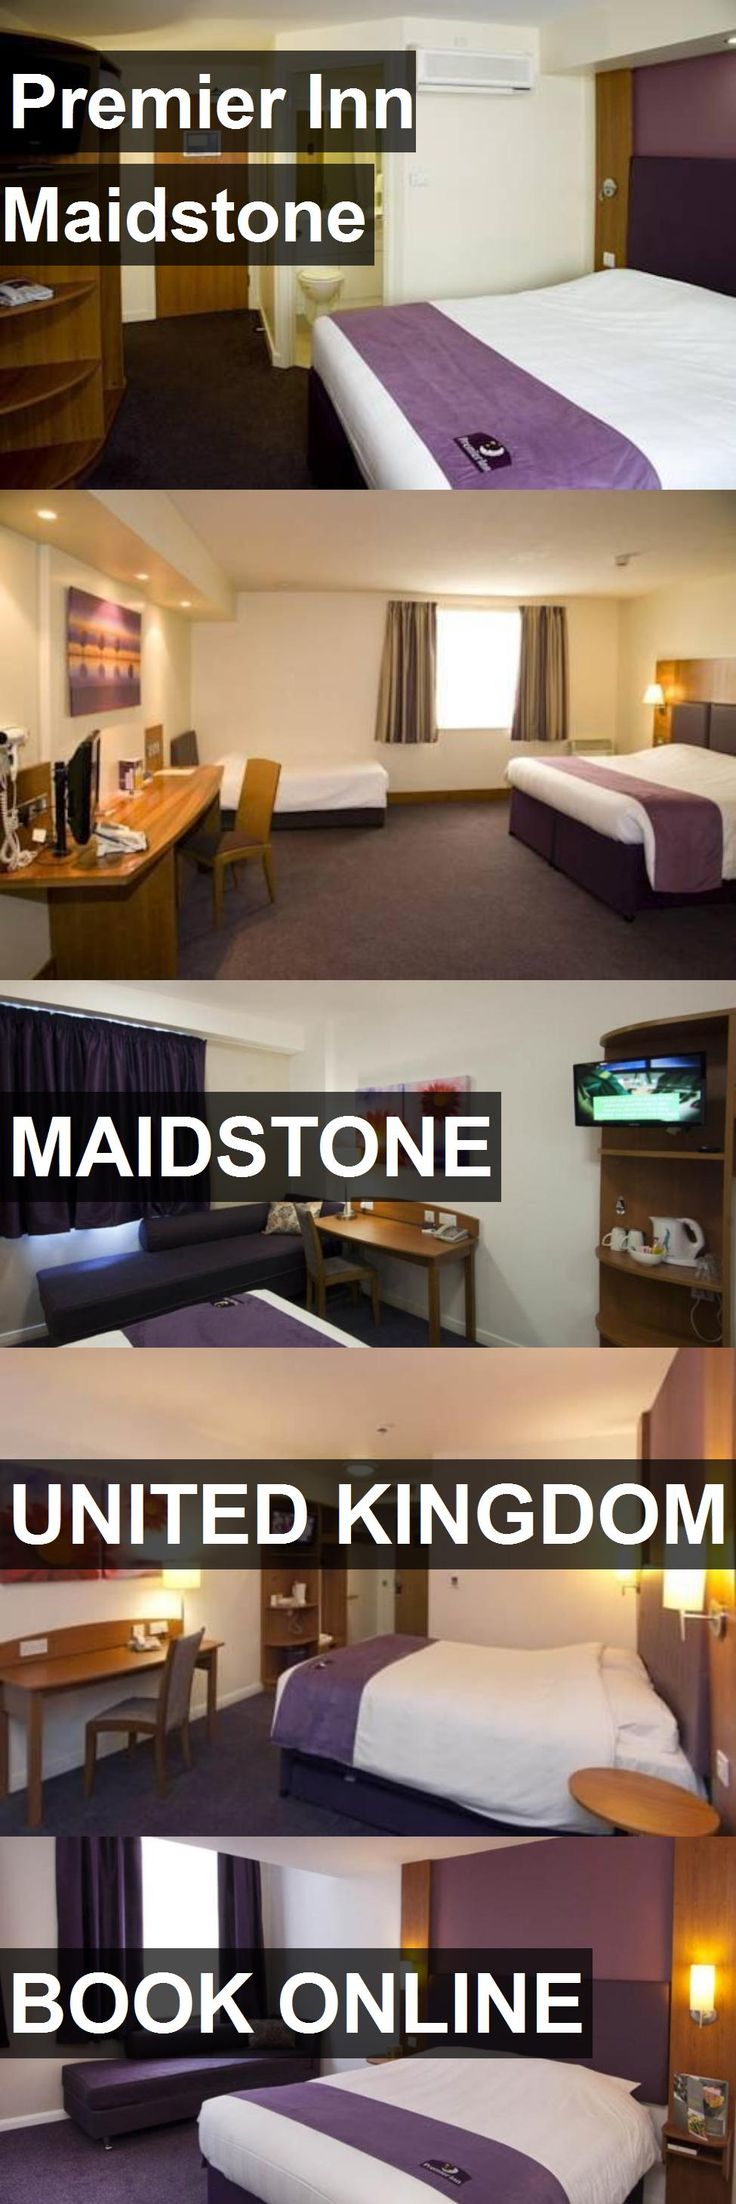 Hotel Premier Inn Maidstone in Maidstone, United Kingdom. For more information, photos, reviews and best prices please follow the link. #UnitedKingdom #Maidstone #hotel #travel #vacation